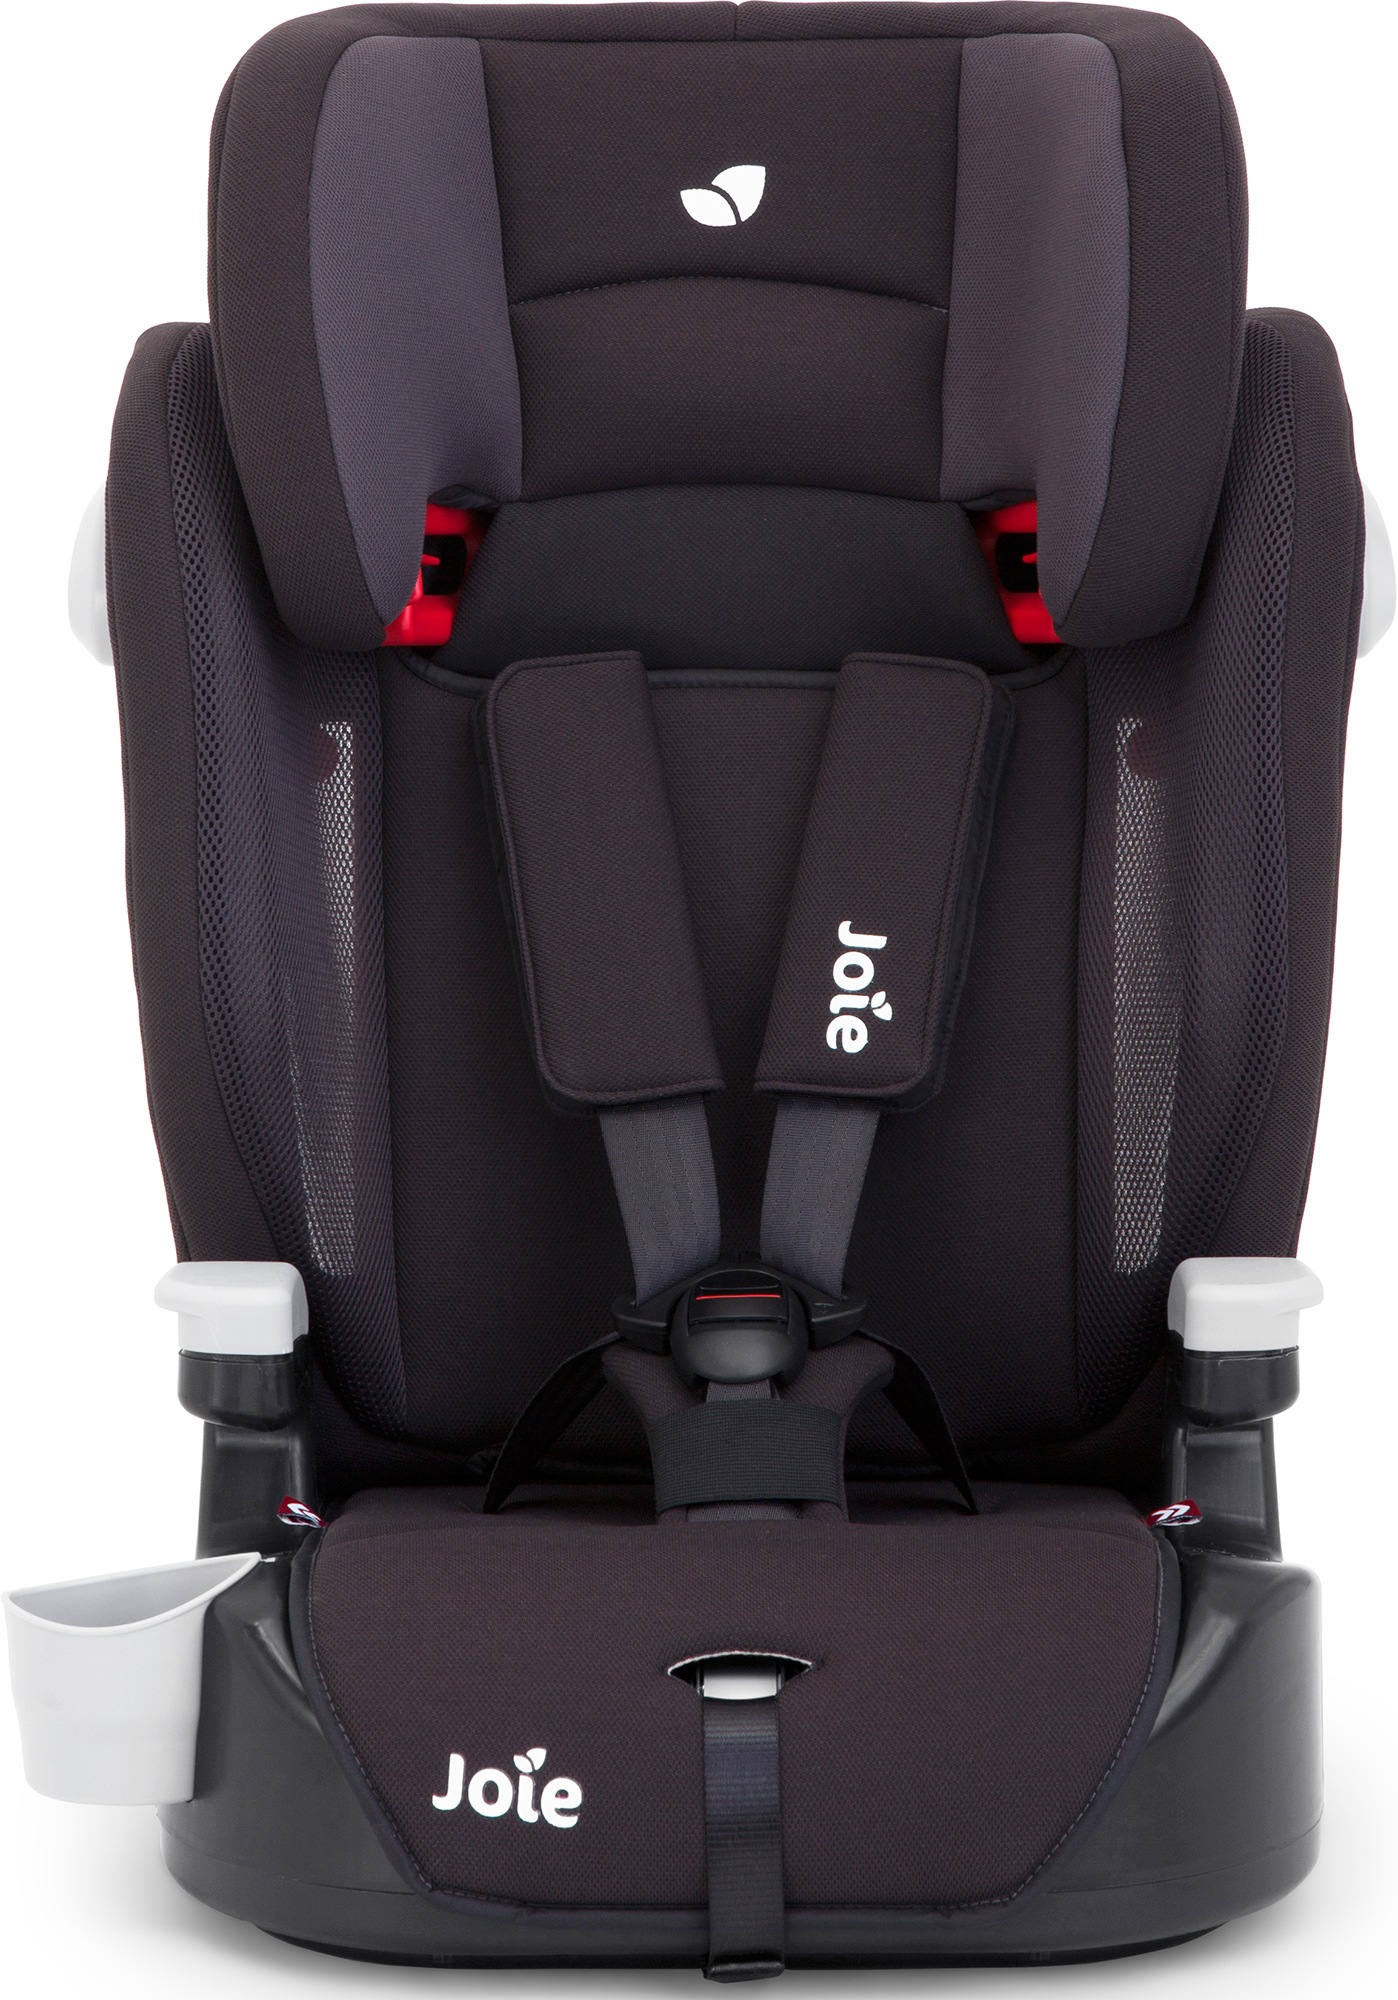 Joie Elevate   Group    Two Tone Black Car Seat